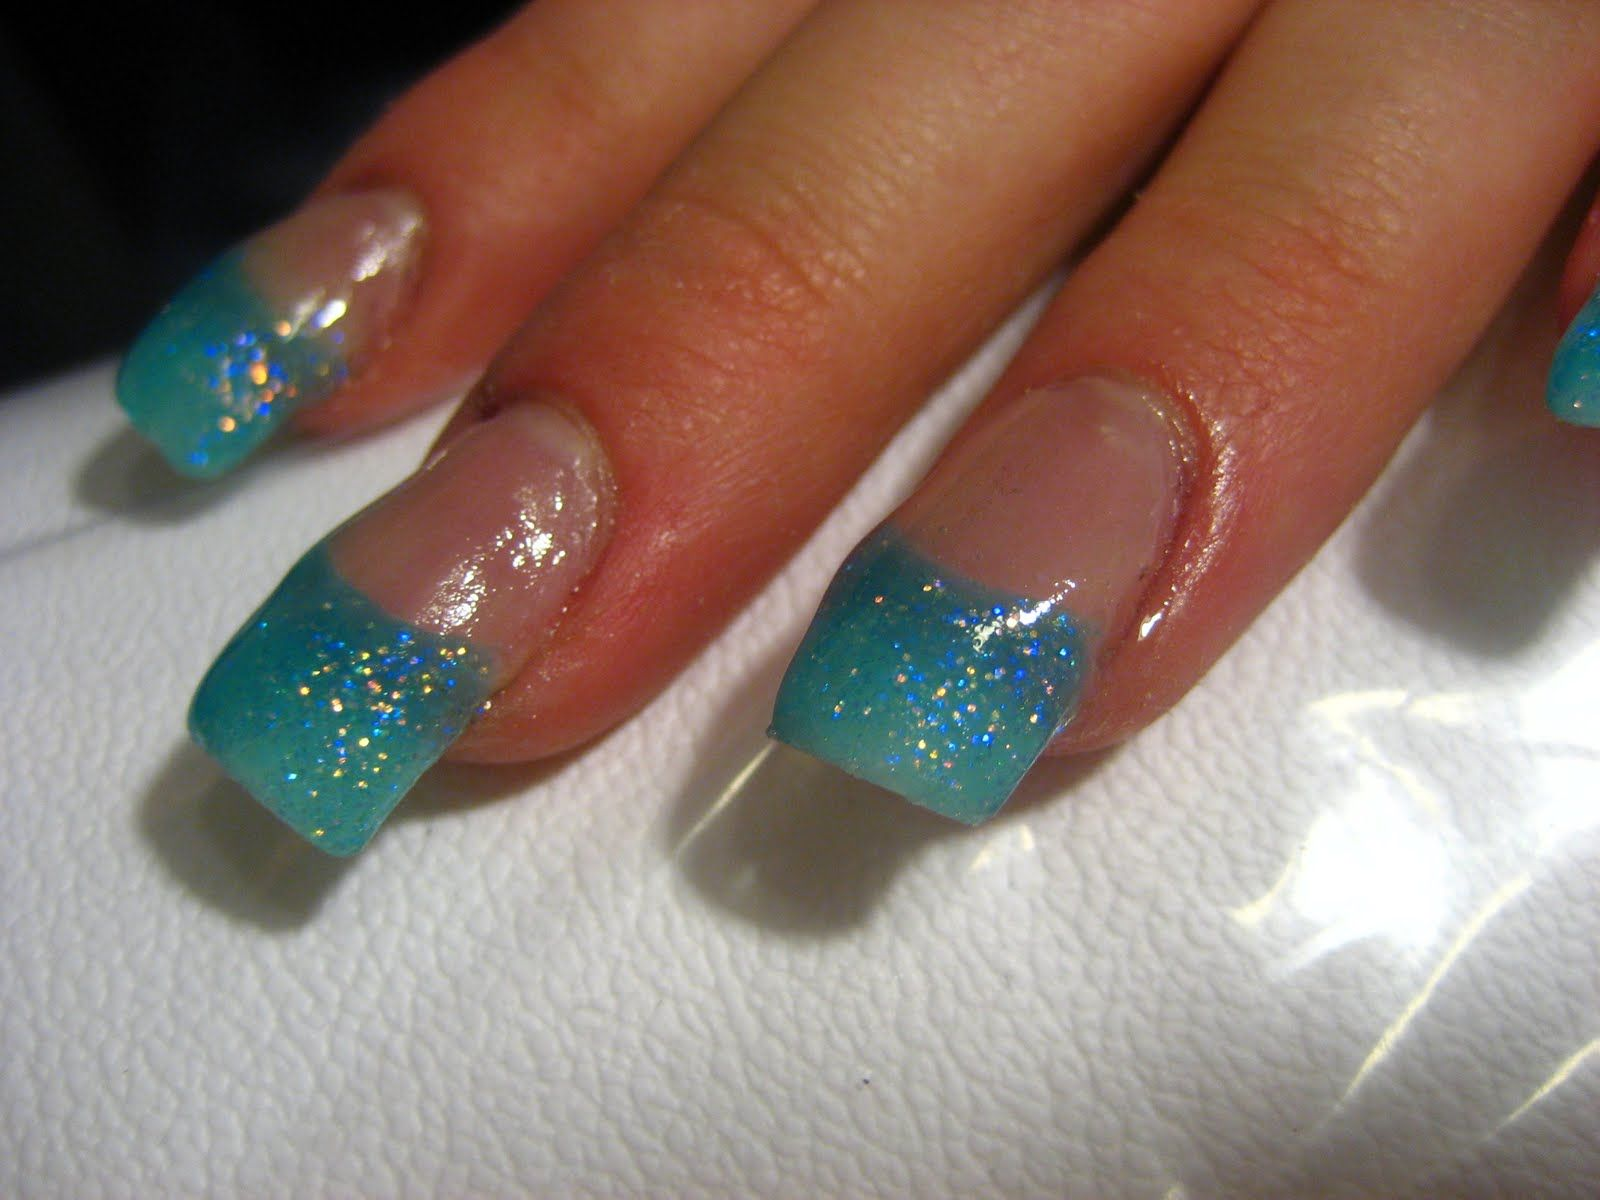 Glitter Acrylic Nail Designs | Nail design: blue glitter nails ...